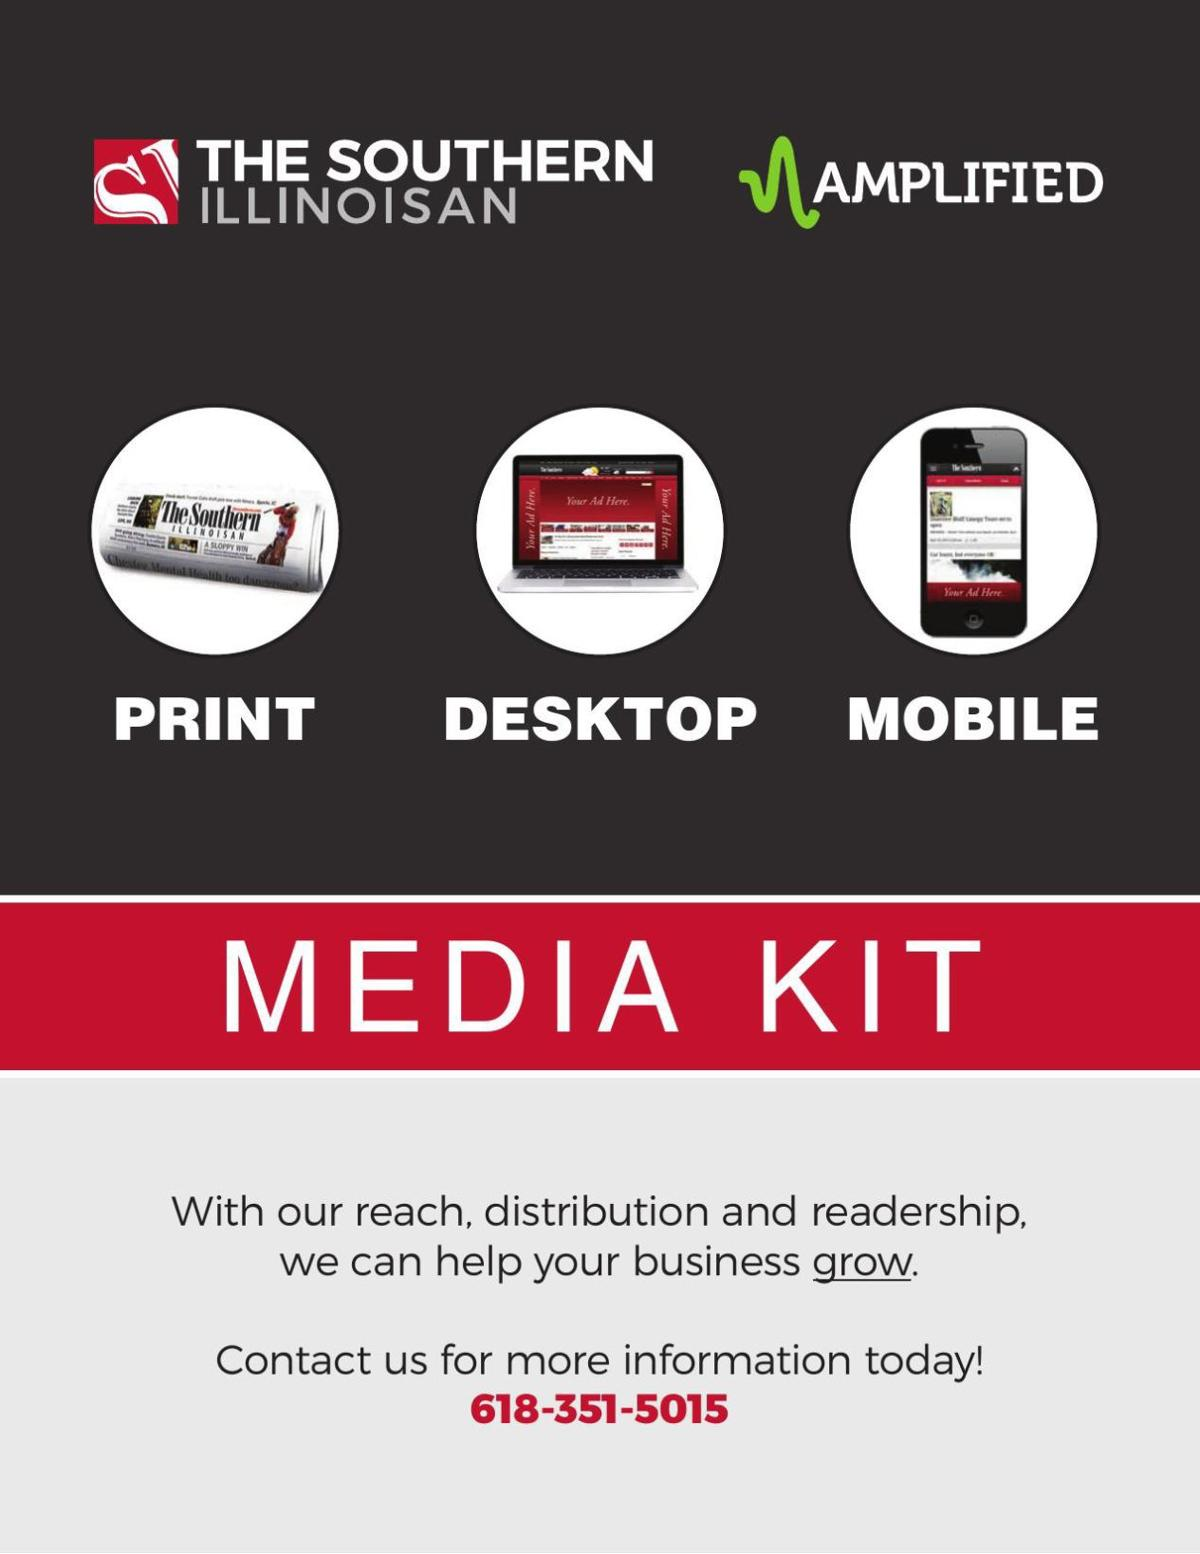 Download for information about our print and digital advertising packages